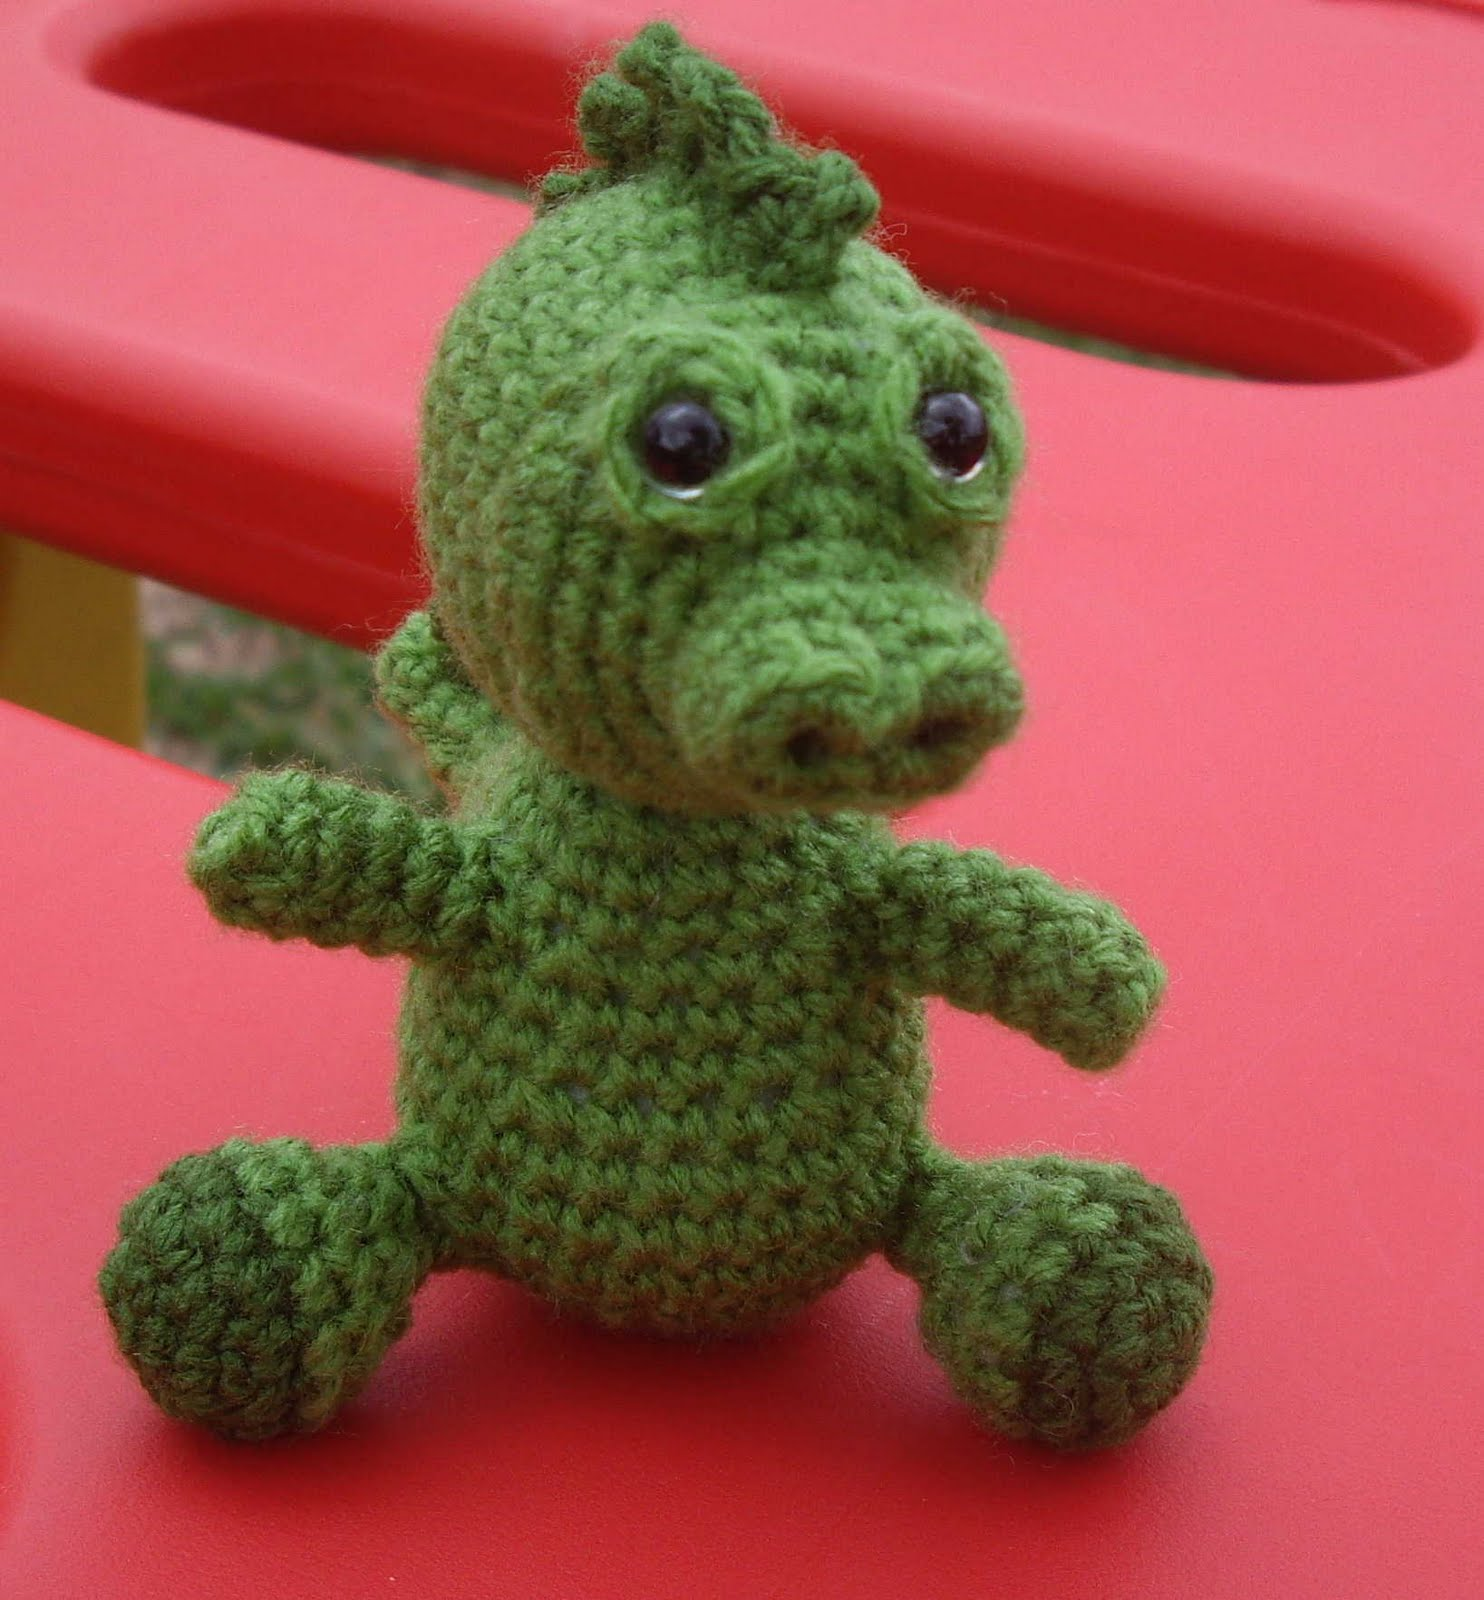 Crochet Patterns Dragon : 2000 Free Amigurumi Patterns: Soren the Baby Dragon